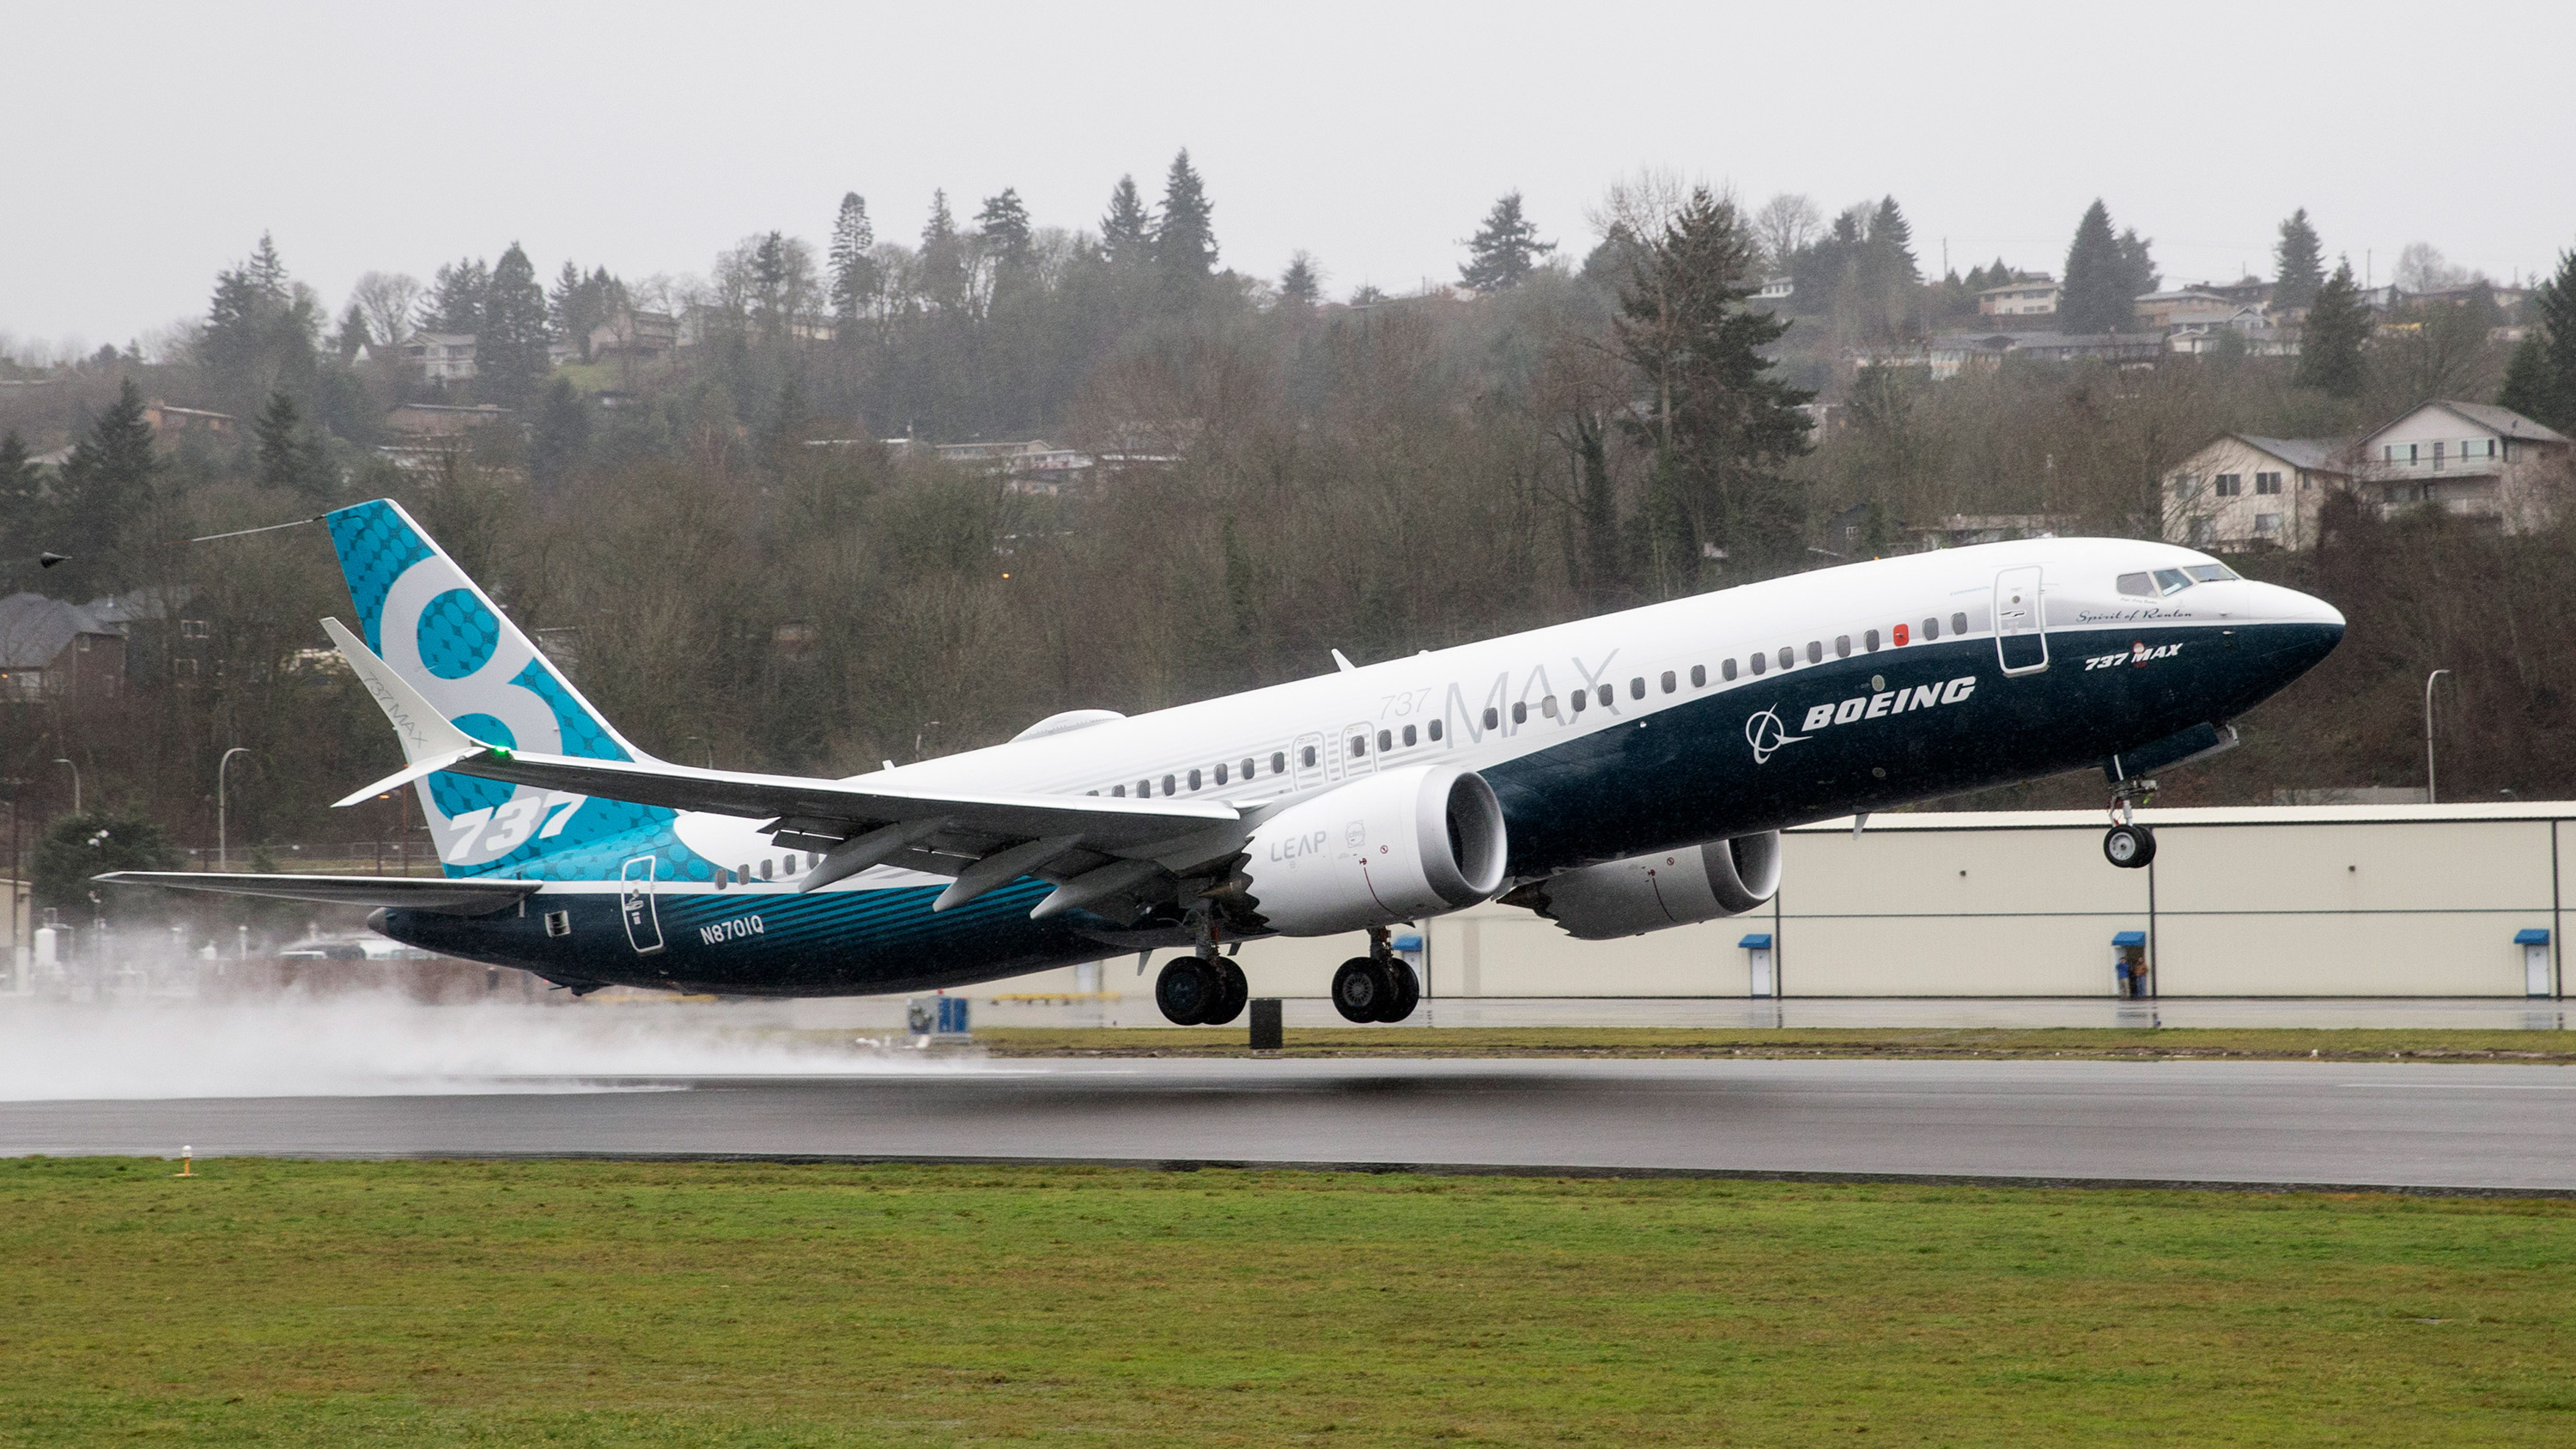 Boeing's reputation on the line after 737 Max 8 crashes